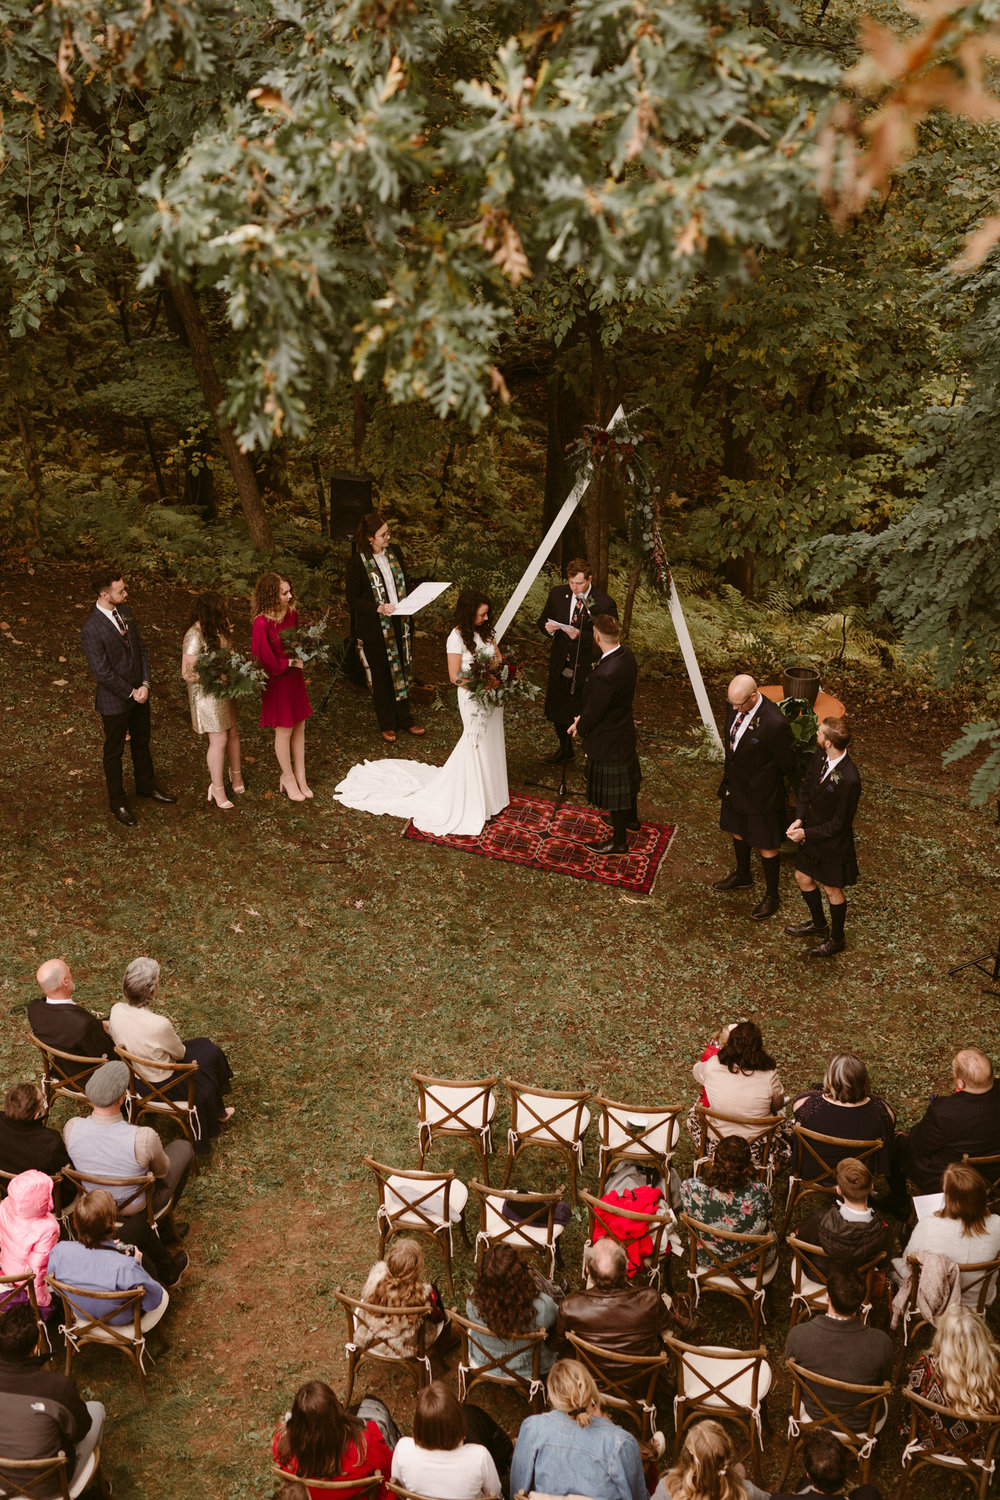 DalbrechtPhotography_EthanEmma_Wedding_Blog-74.jpg